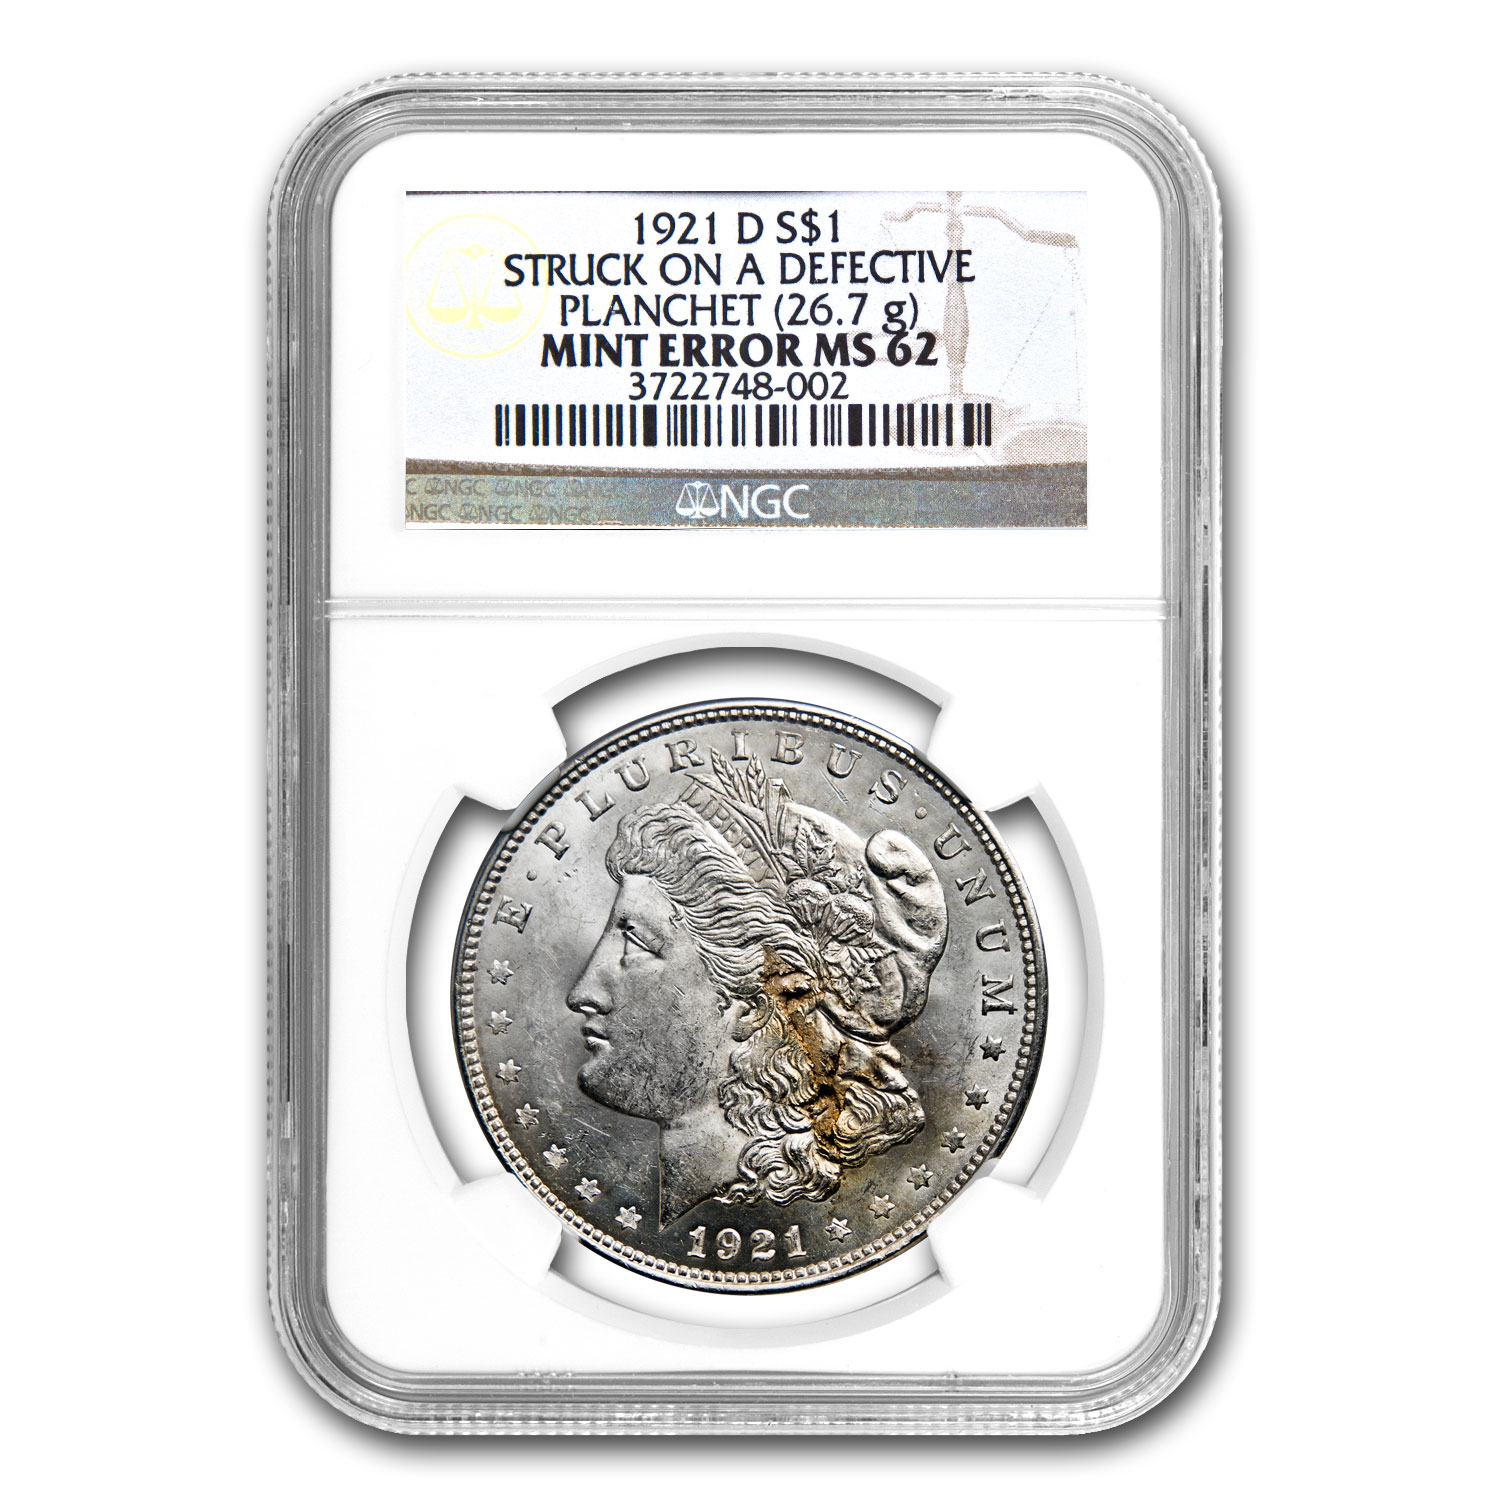 1921 Morgan Dollar MS-62 NGC (Defective Planchet Mint Error)